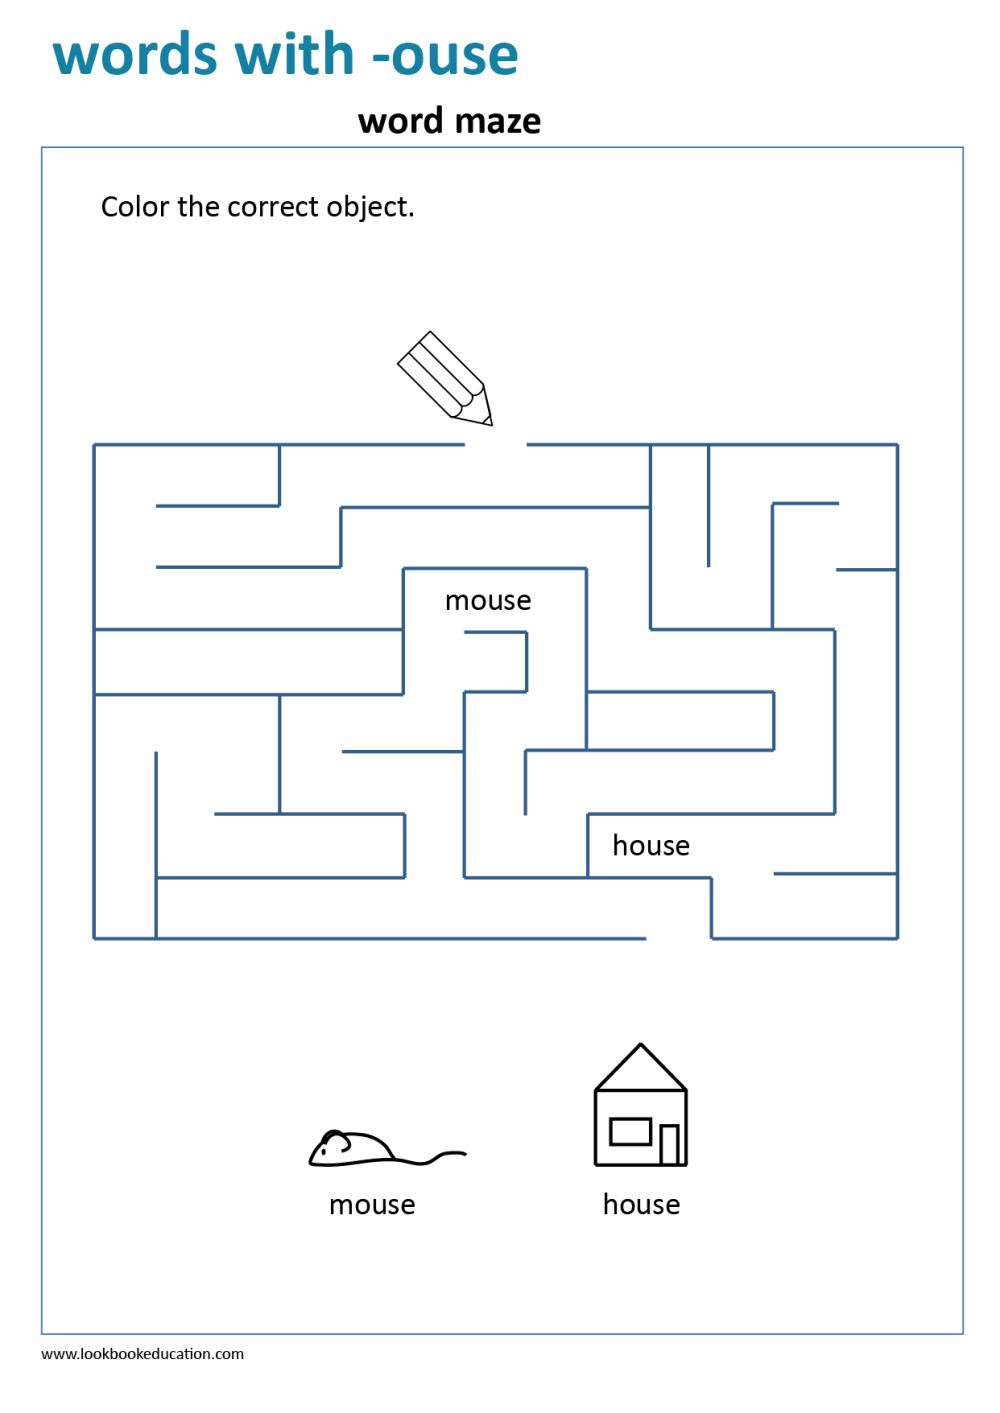 medium resolution of English Maze Worksheet   Printable Worksheets and Activities for Teachers